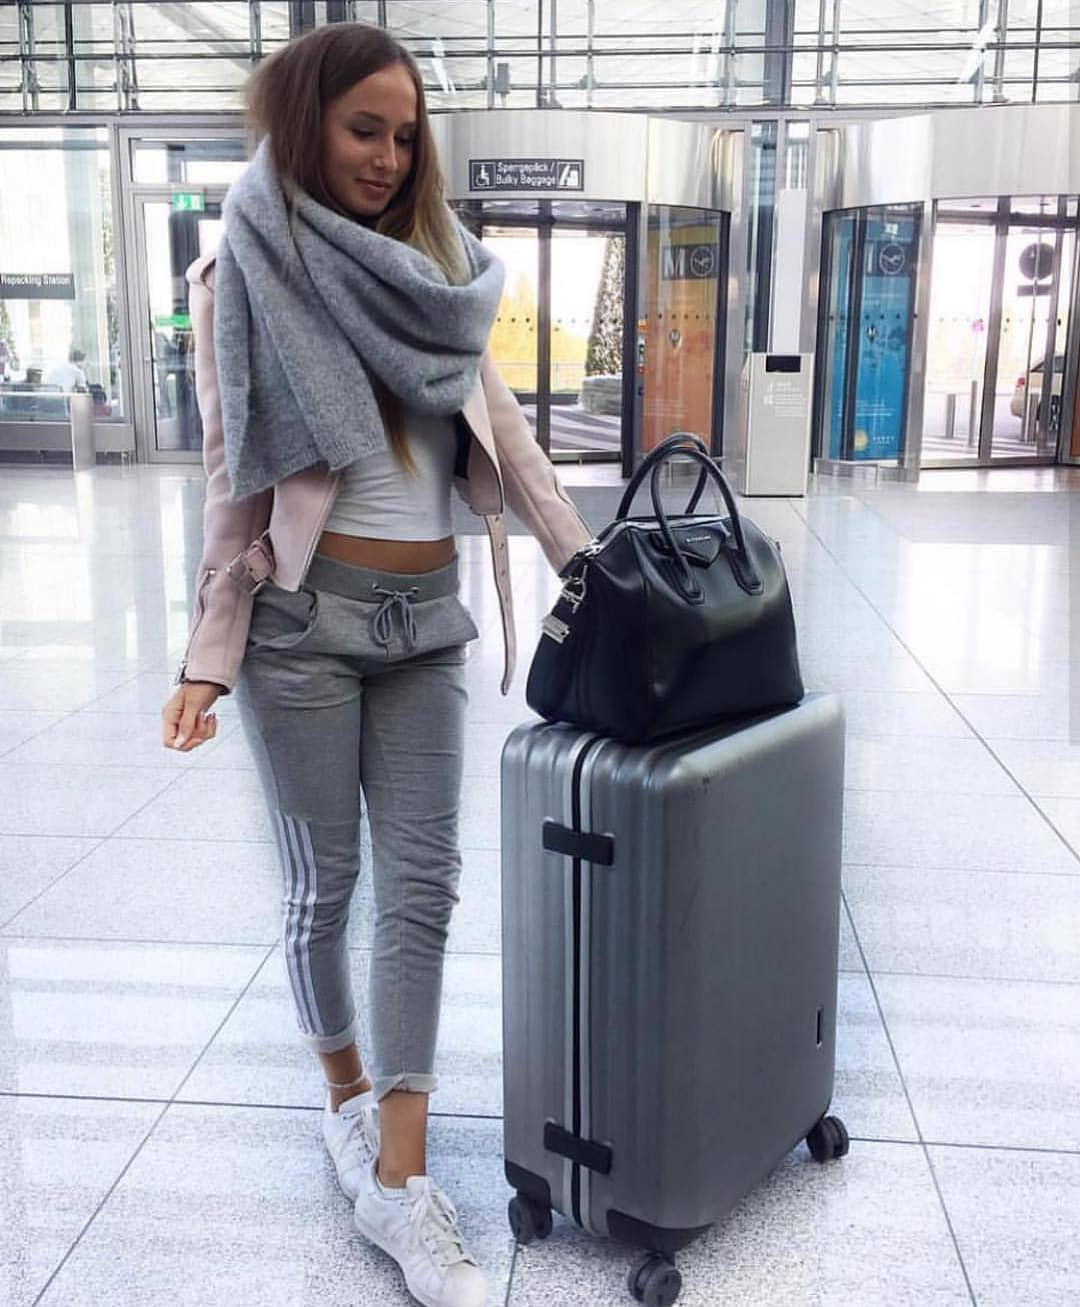 Airport Outfit Ideas: Oversized Scarf, Blush Leather Jacket, And Grey Joggers 2020